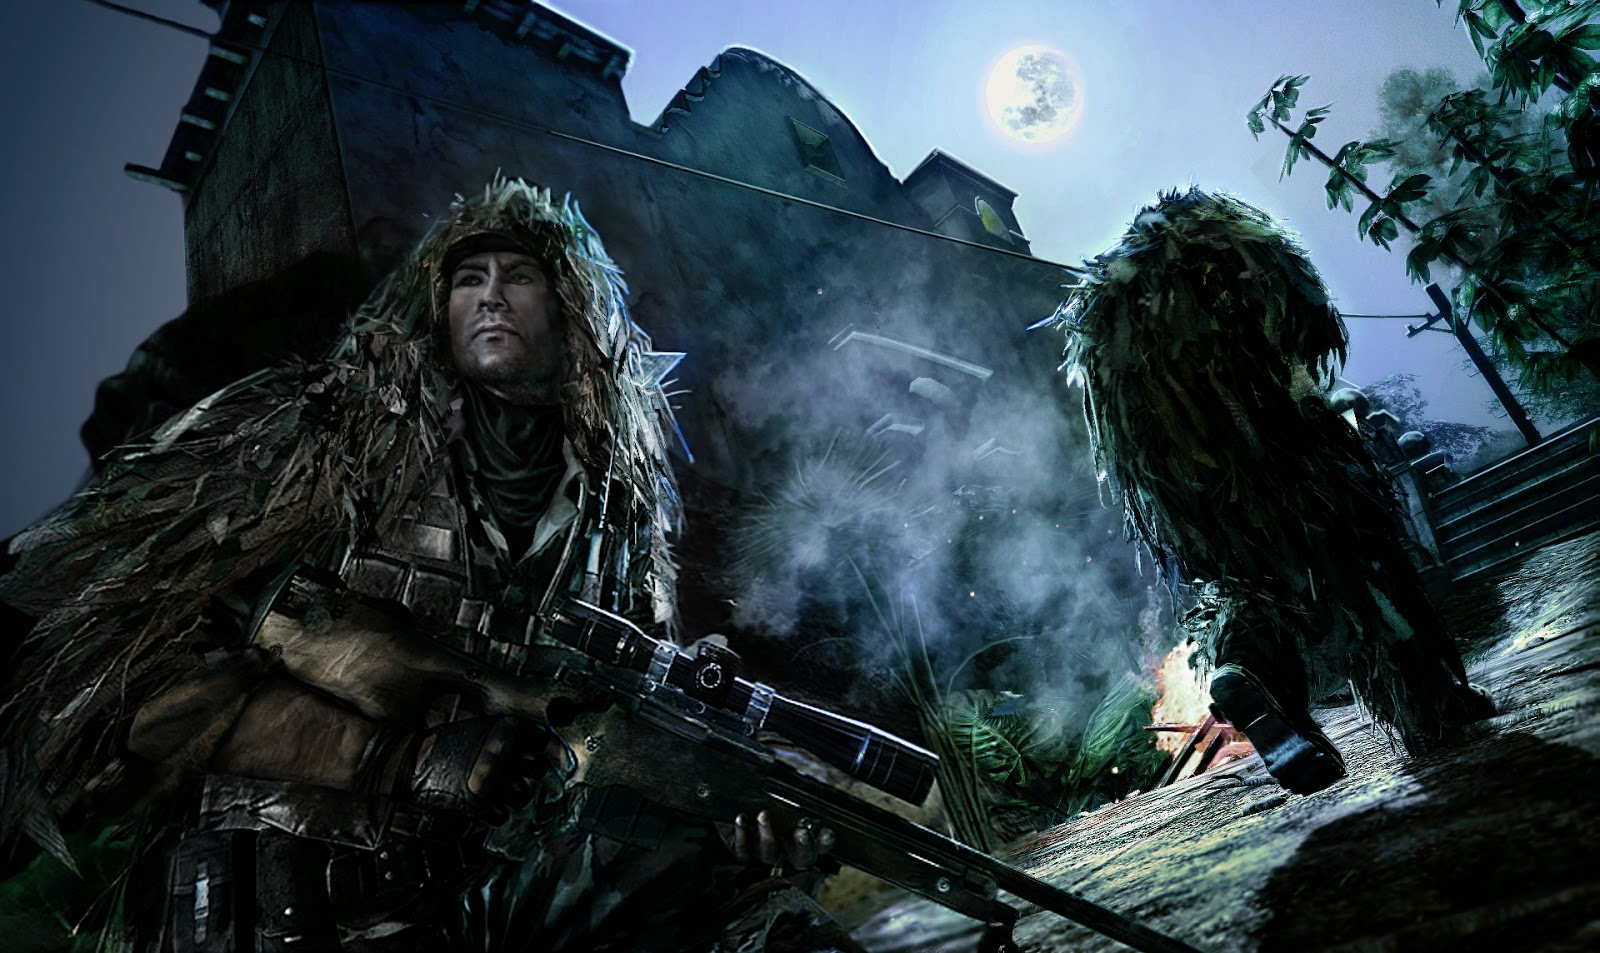 Mw2 Ghost Wallpaper Hd Wallpapers Games Sniper Ghost Warrior 2 พื้นที่ Download